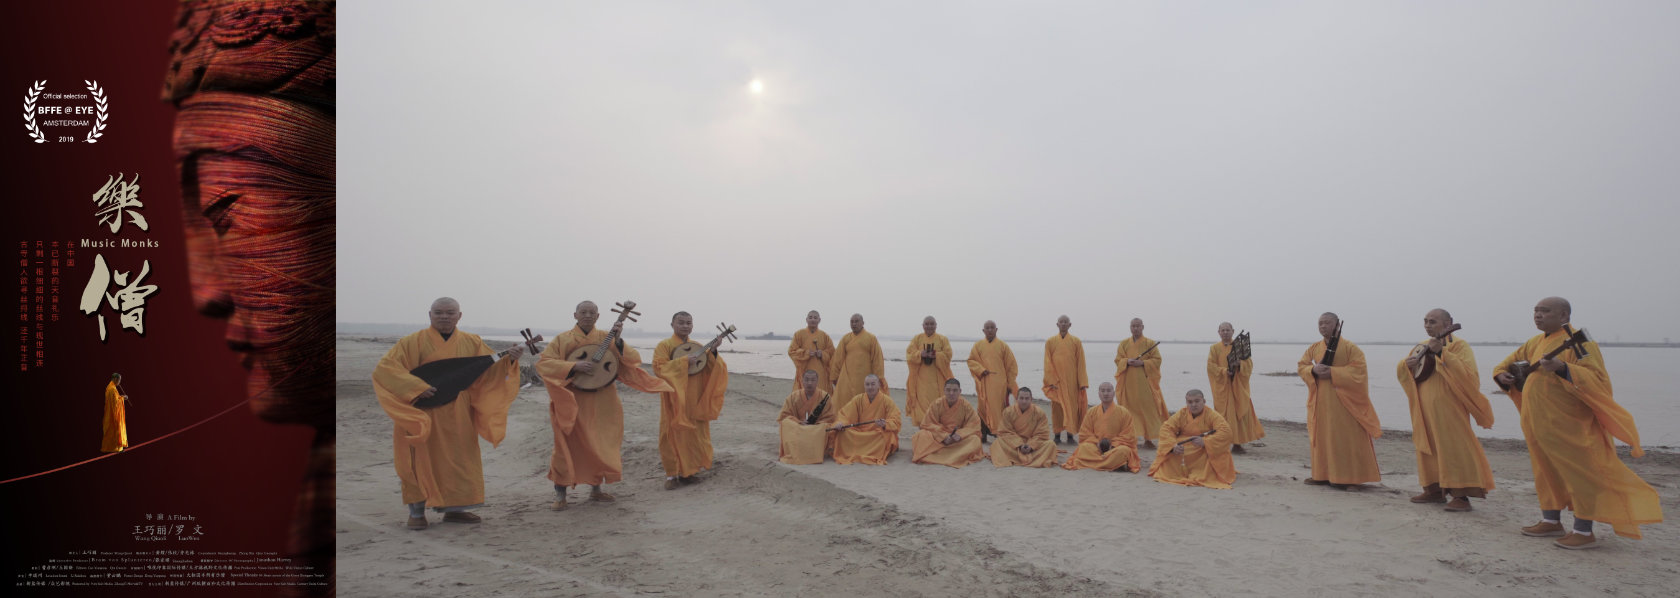 Monks playing chinese musical instruments beside a river - Music Monks - THIS Buddhist Film Festival